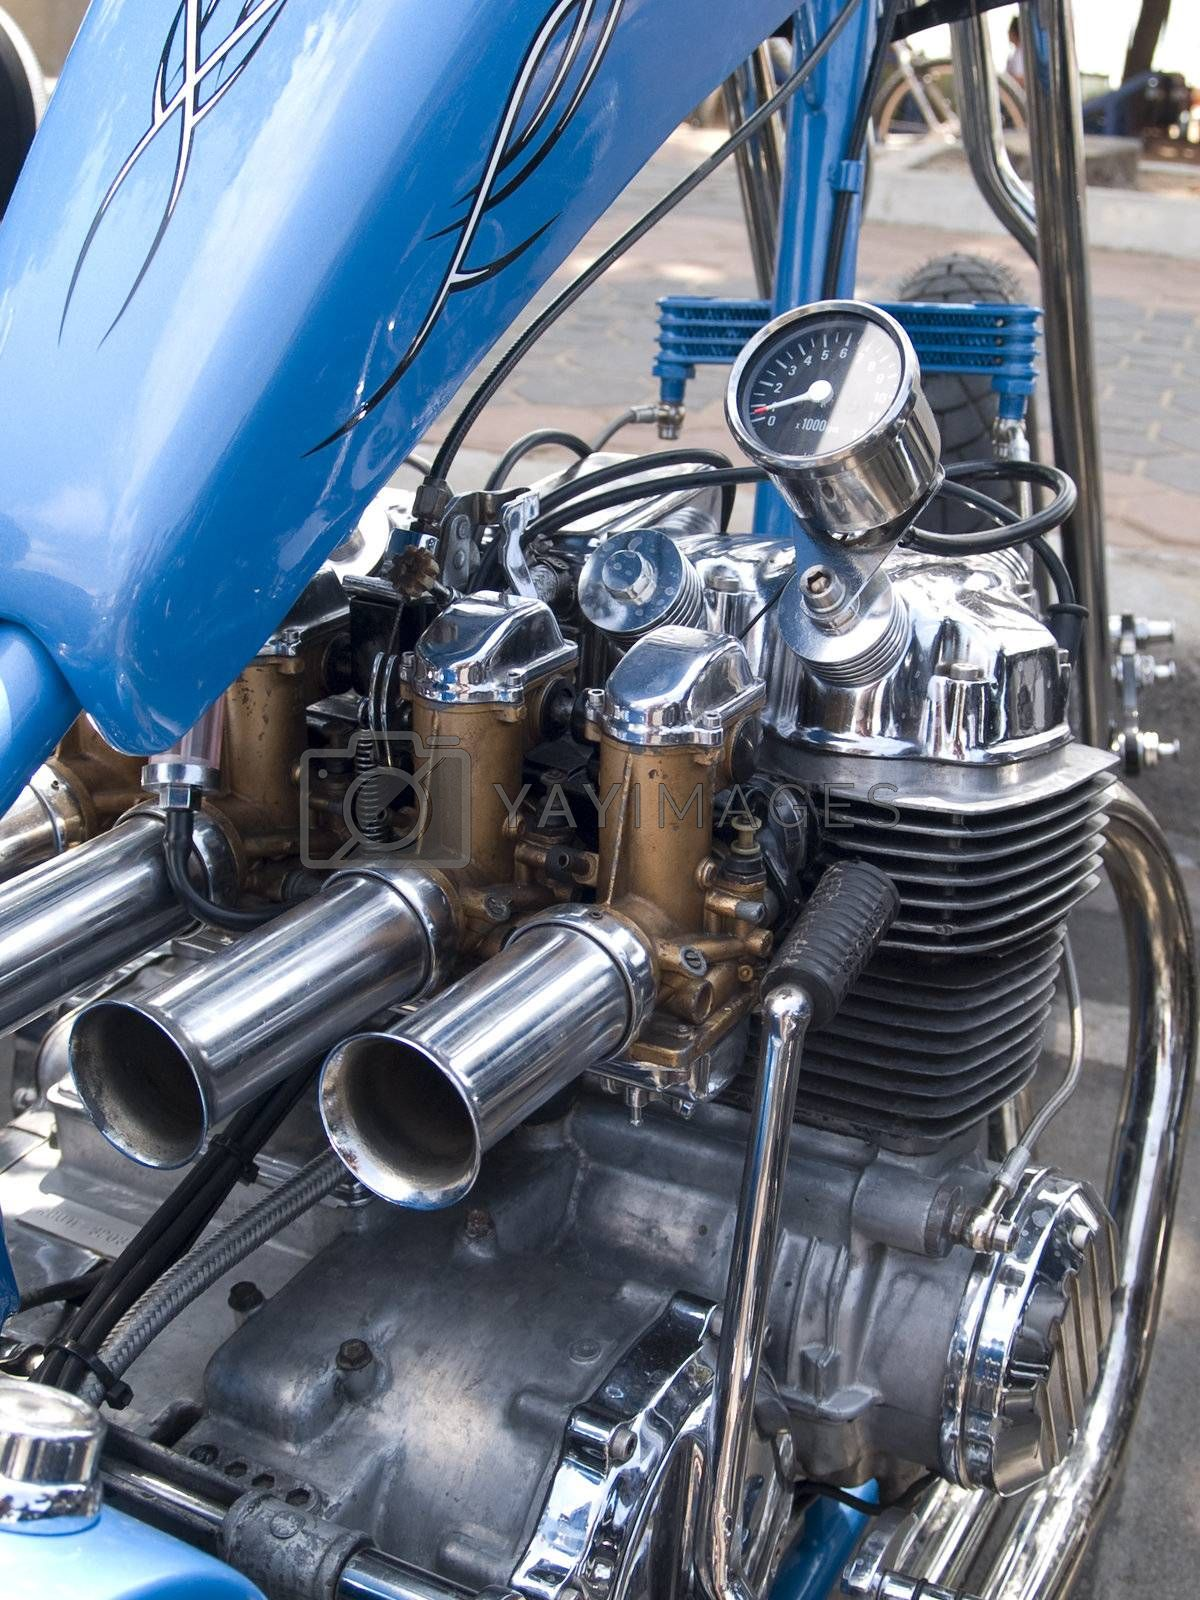 Engine detail of motorcycle by epixx